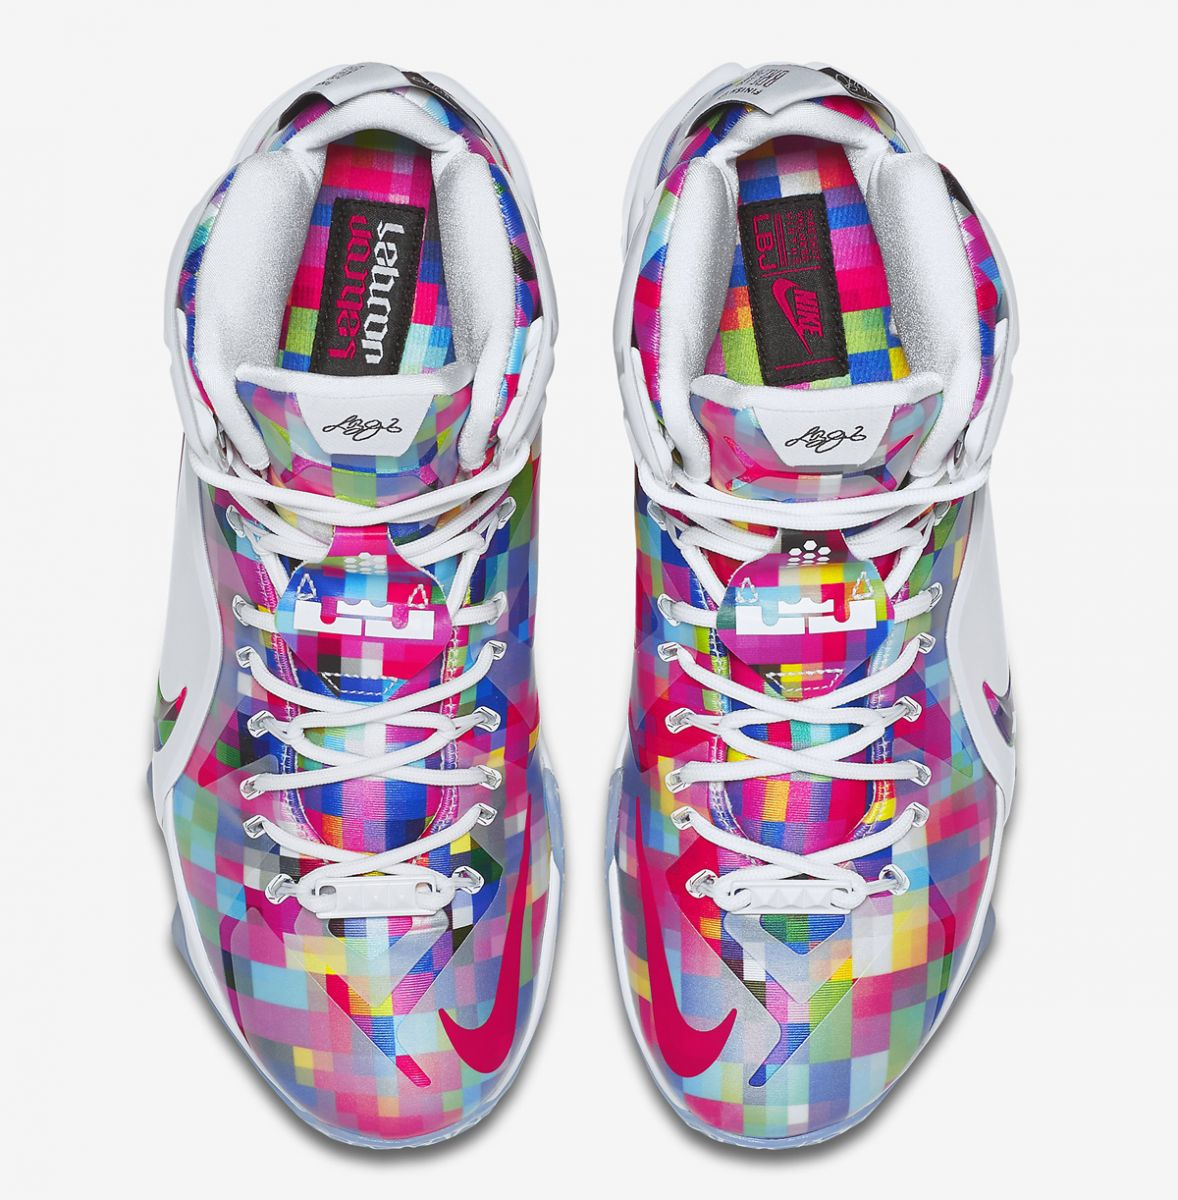 52ac5dd9e3d The Nike LeBron 12's Take on 'Fruity Pebbles' | Sole Collector